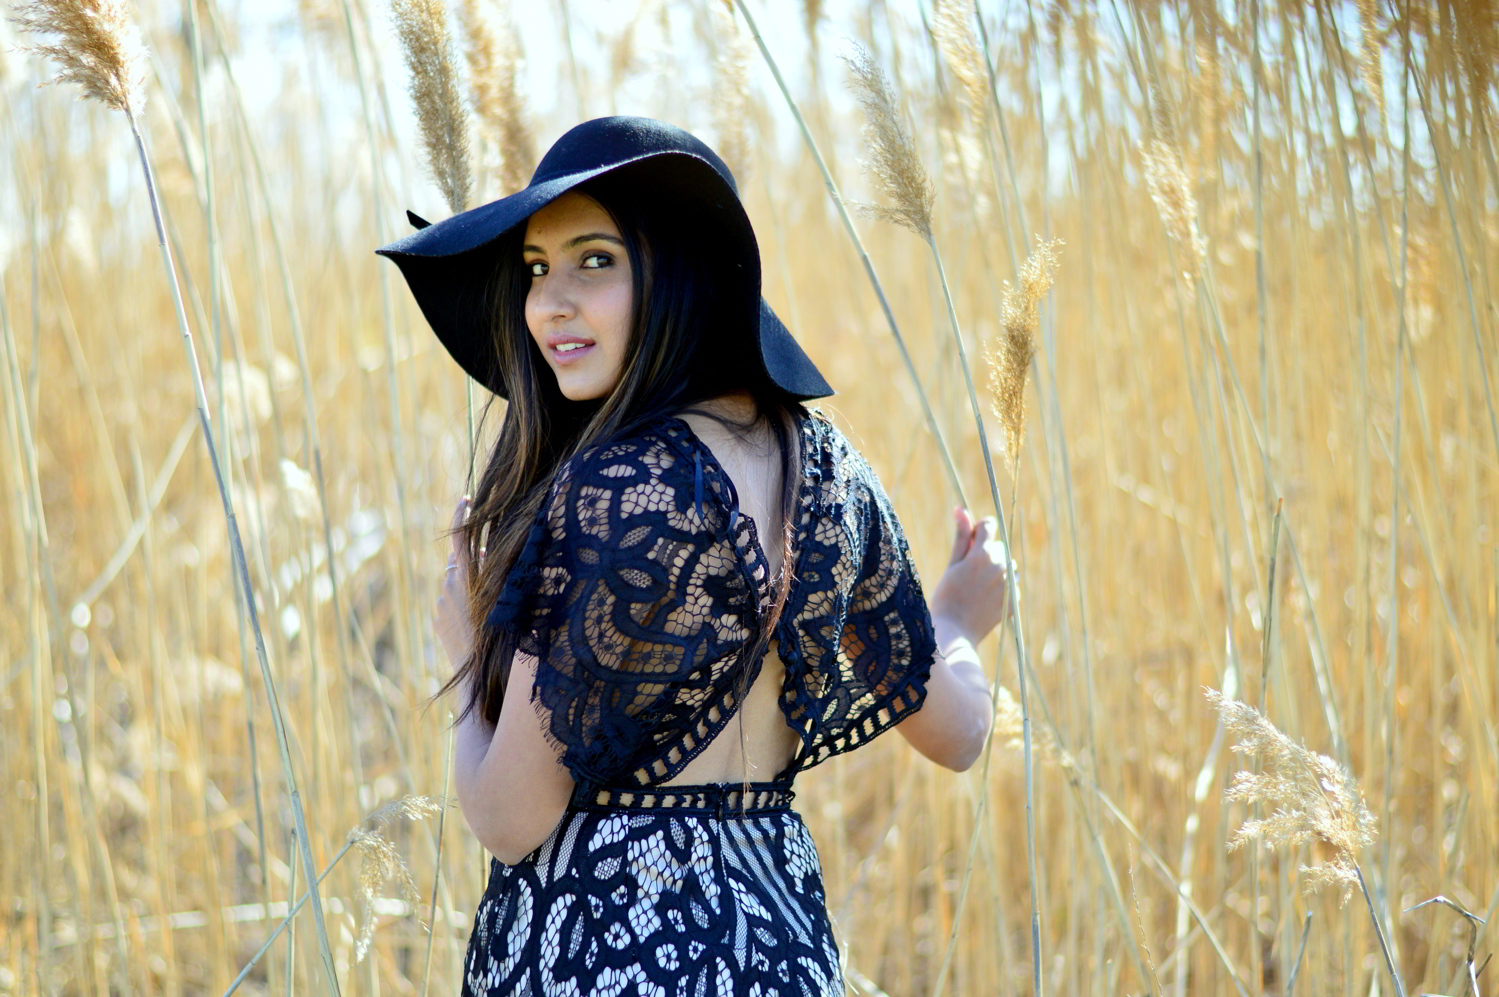 black-lace-romper-boho-festival-style-blogger-spring-outfit 8